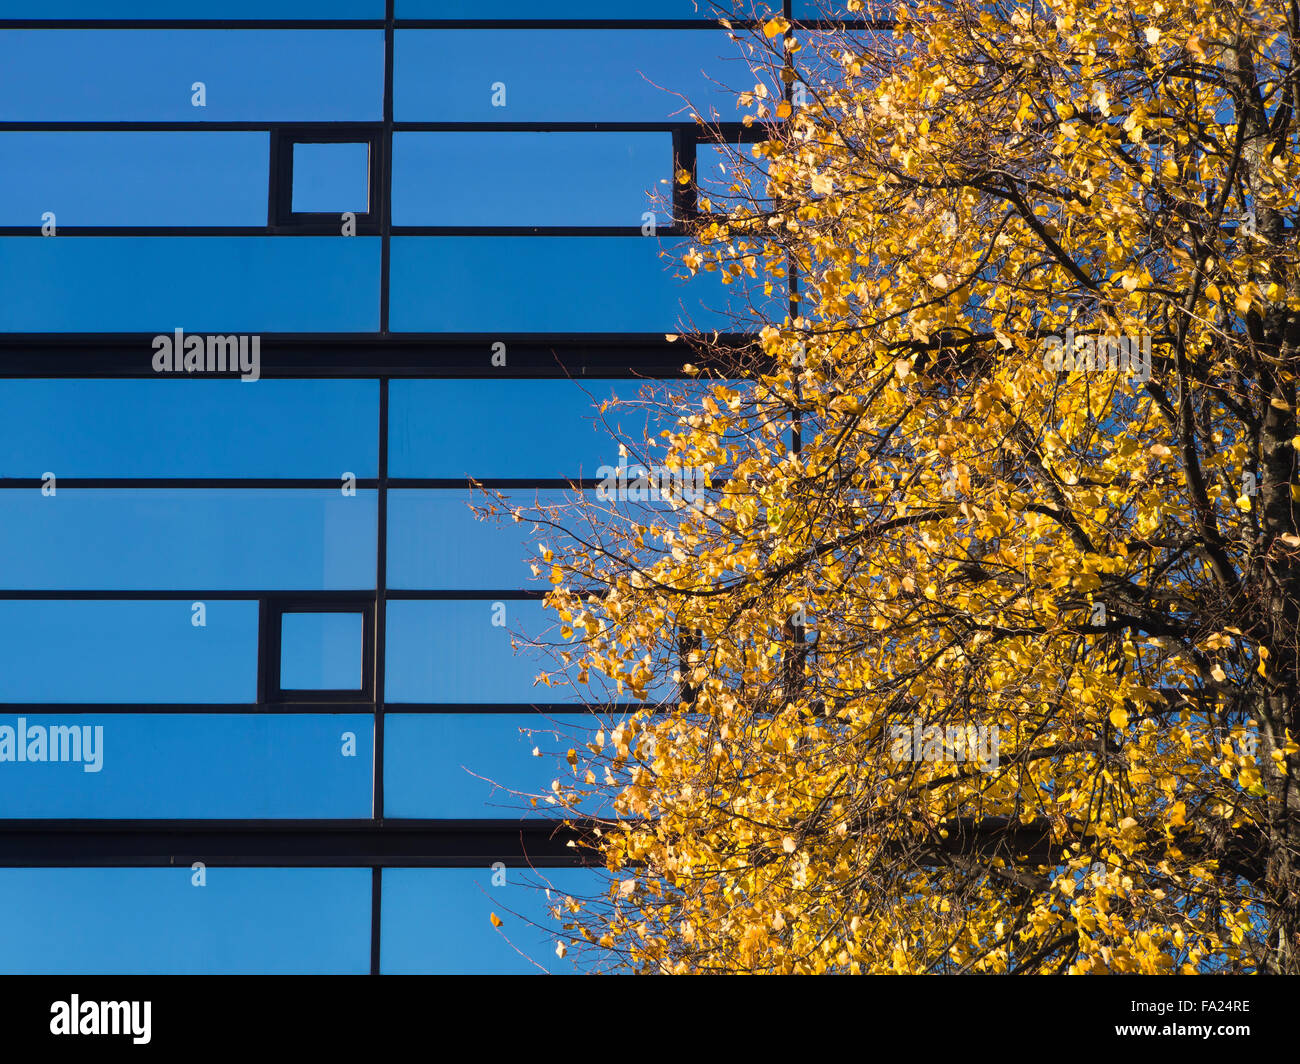 Blue sky reflected in commercial glass facade, yellow birch foliage in autumn, a sunny day in Oslo Norway Stock Photo